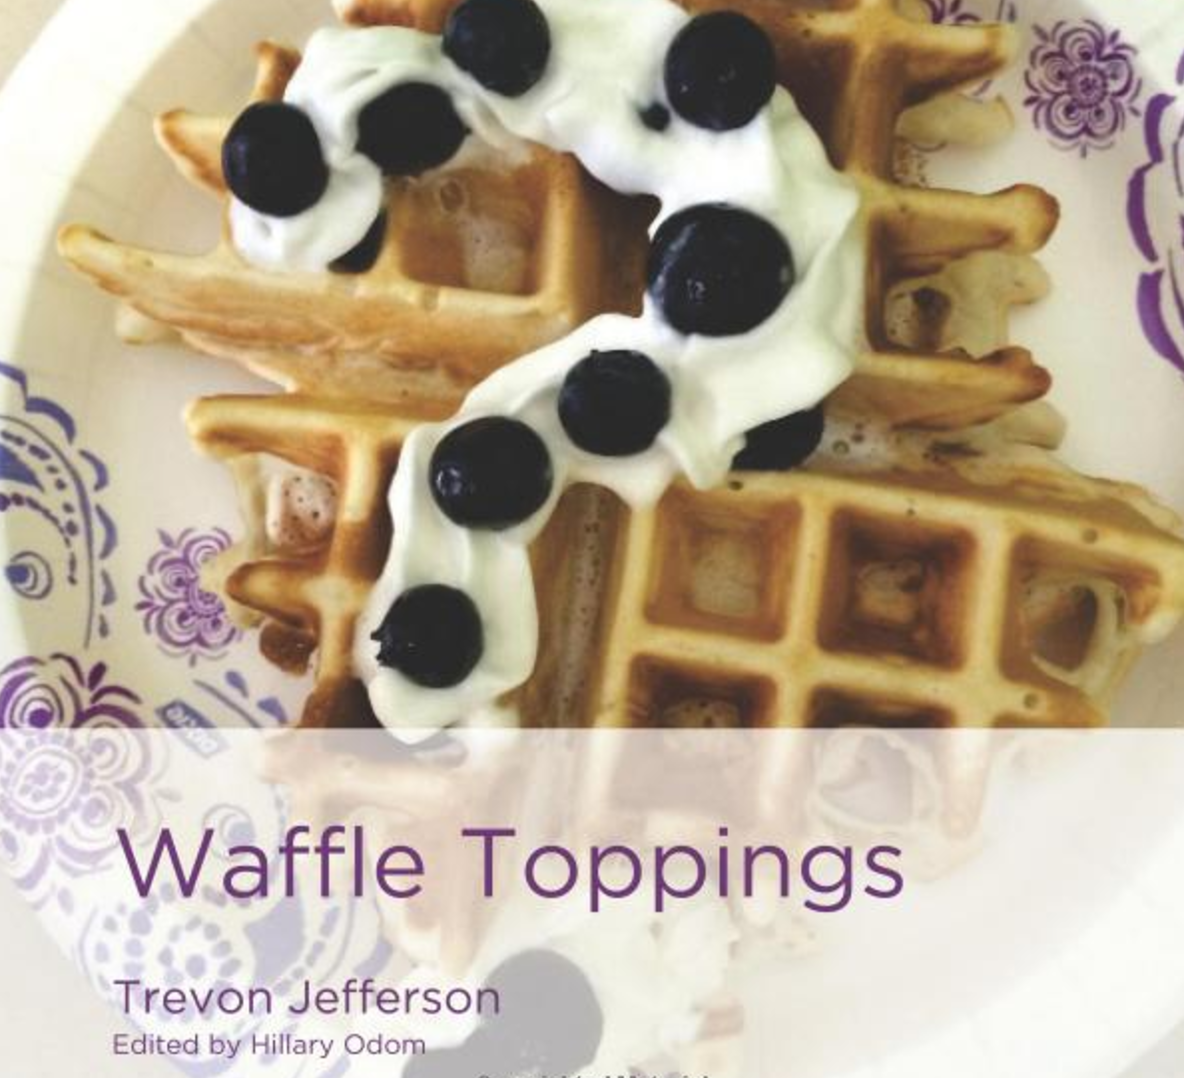 Waffle Toppings   Take an edible journey into the art of Waffle Toppings. Chef and author, Trevon Jefferson, shares his favorite toppings and guides the beginning reader to think about word origins and pronunciations.   Buy this book.